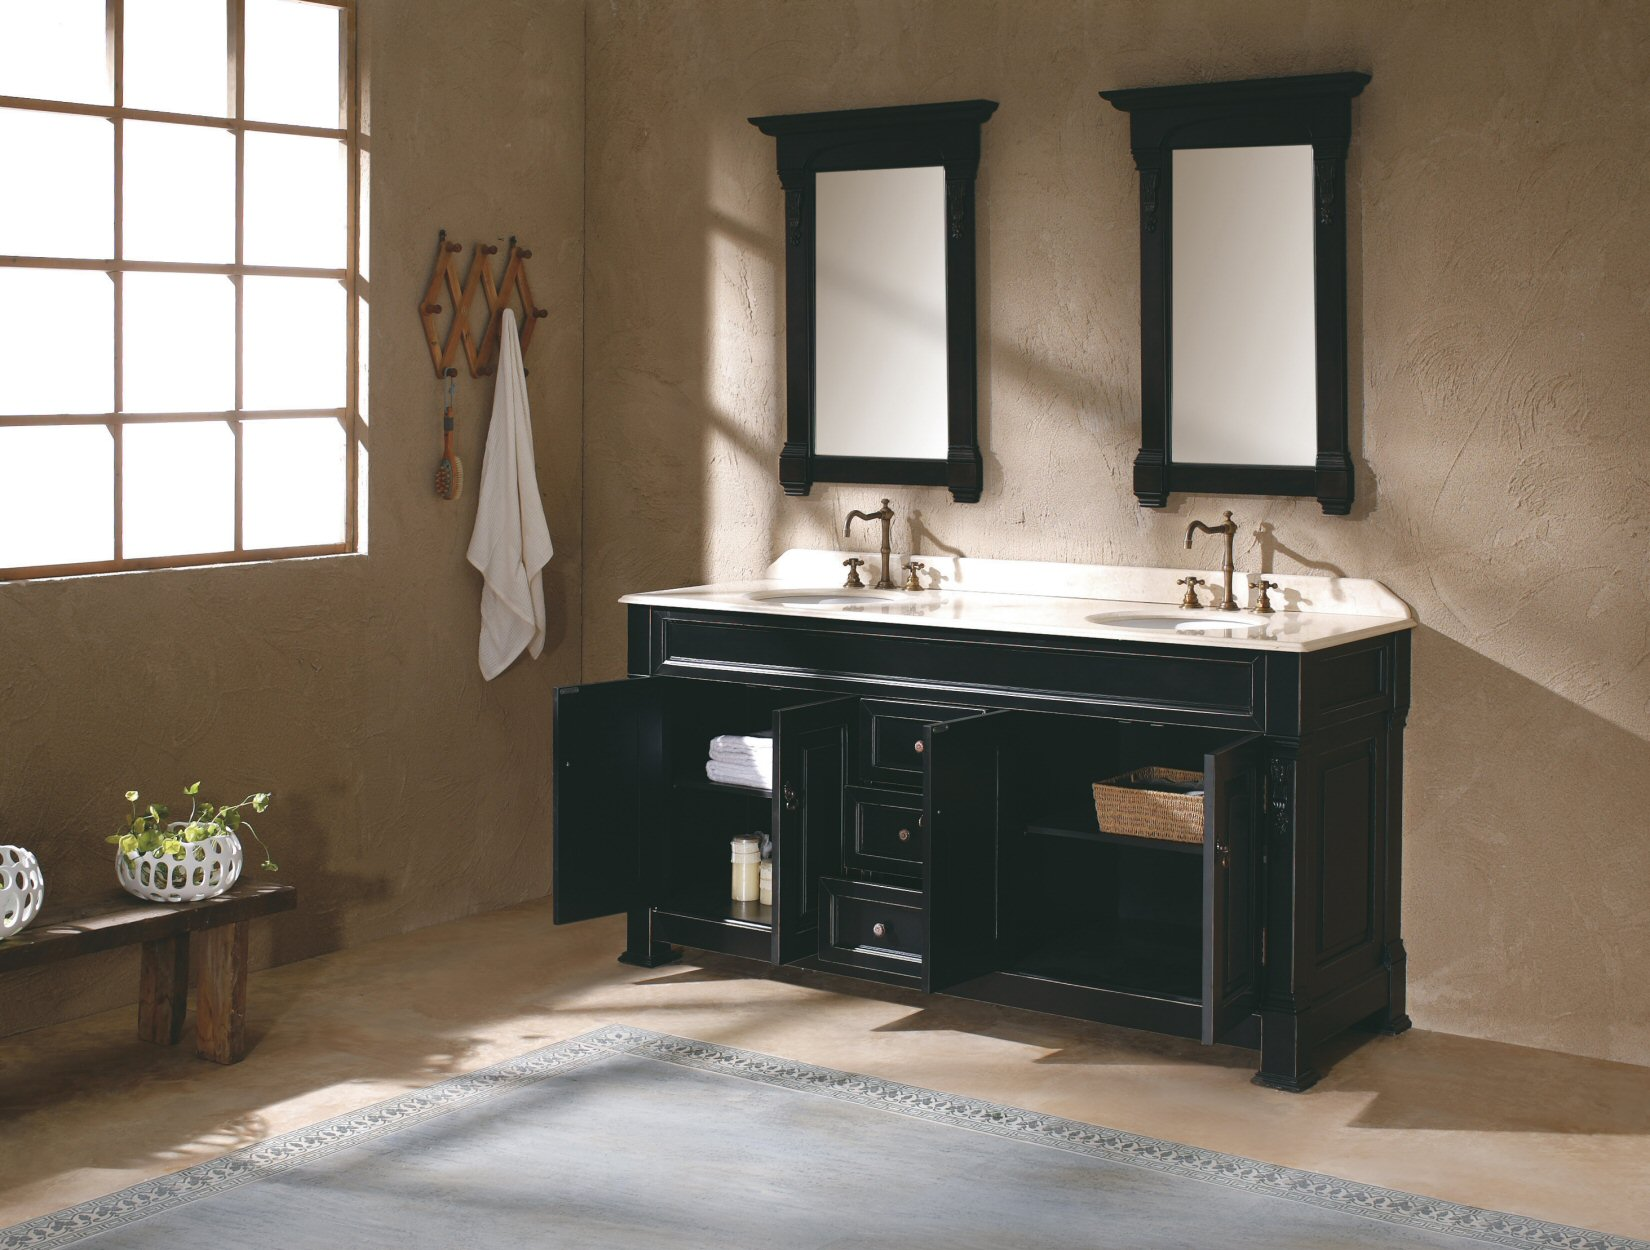 Unique Custom Bathroom Vanities Kitchener Waterloo